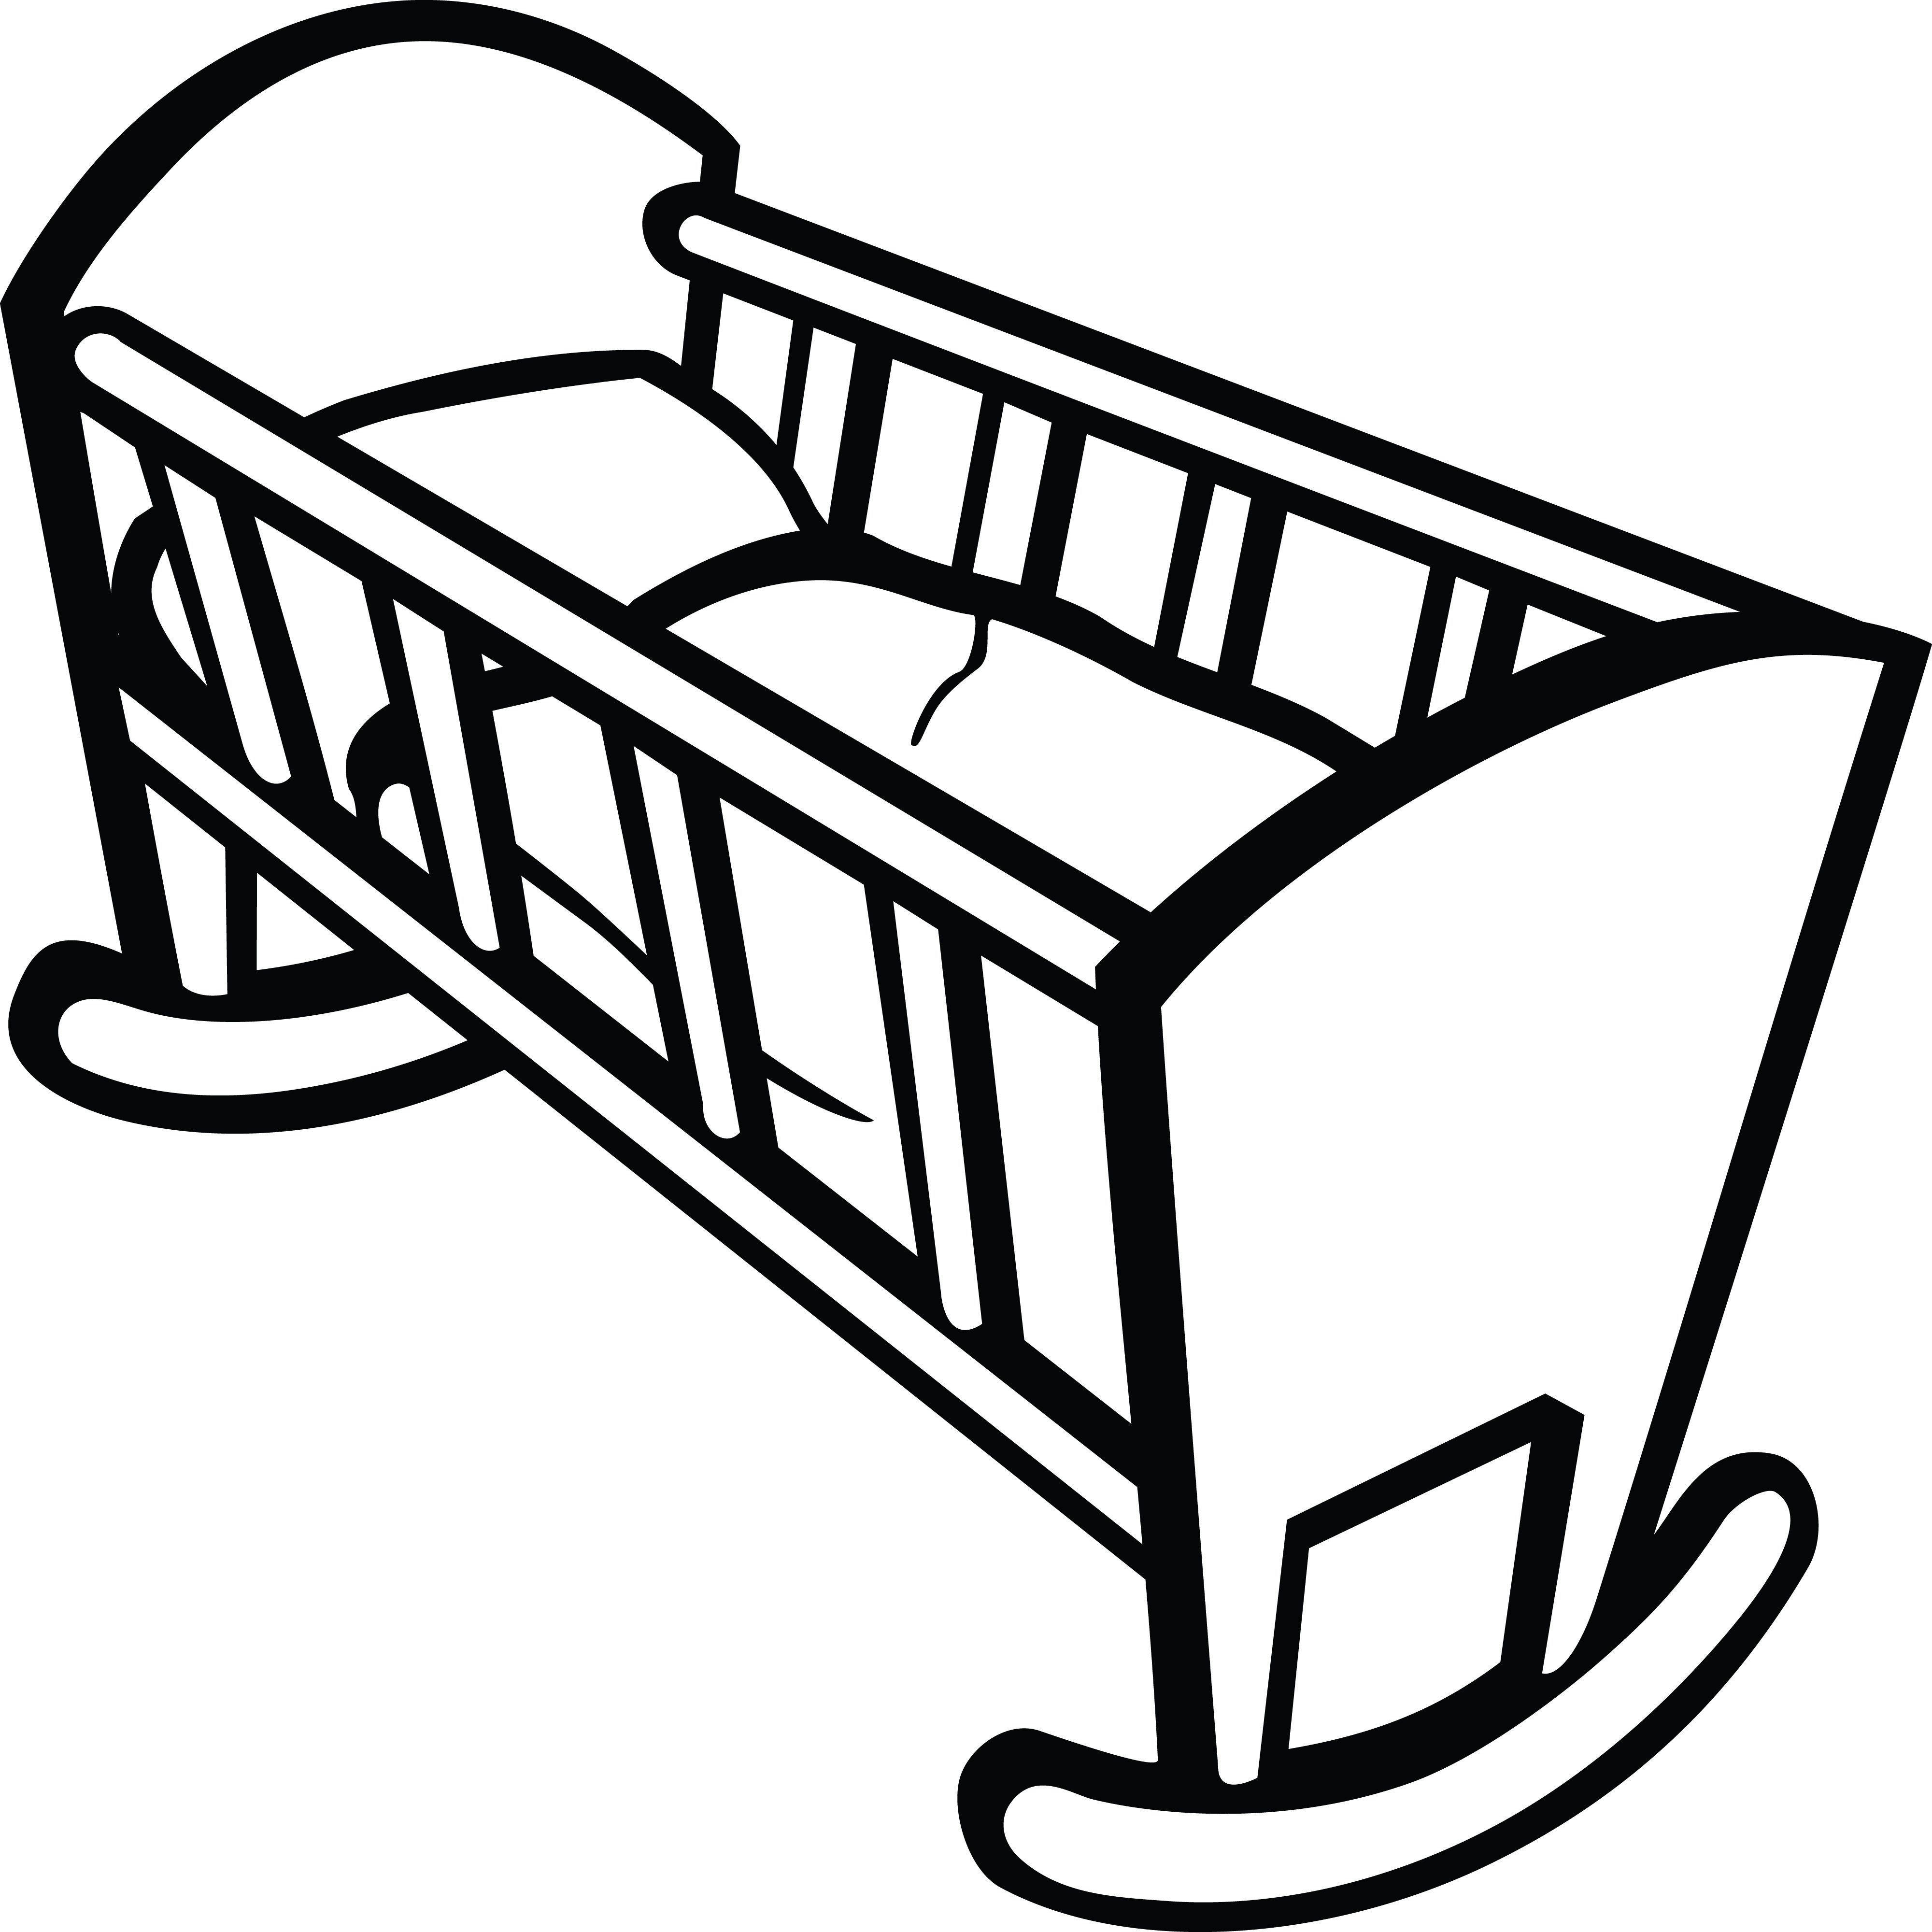 clipart of a baby crib [ 4000 x 4000 Pixel ]